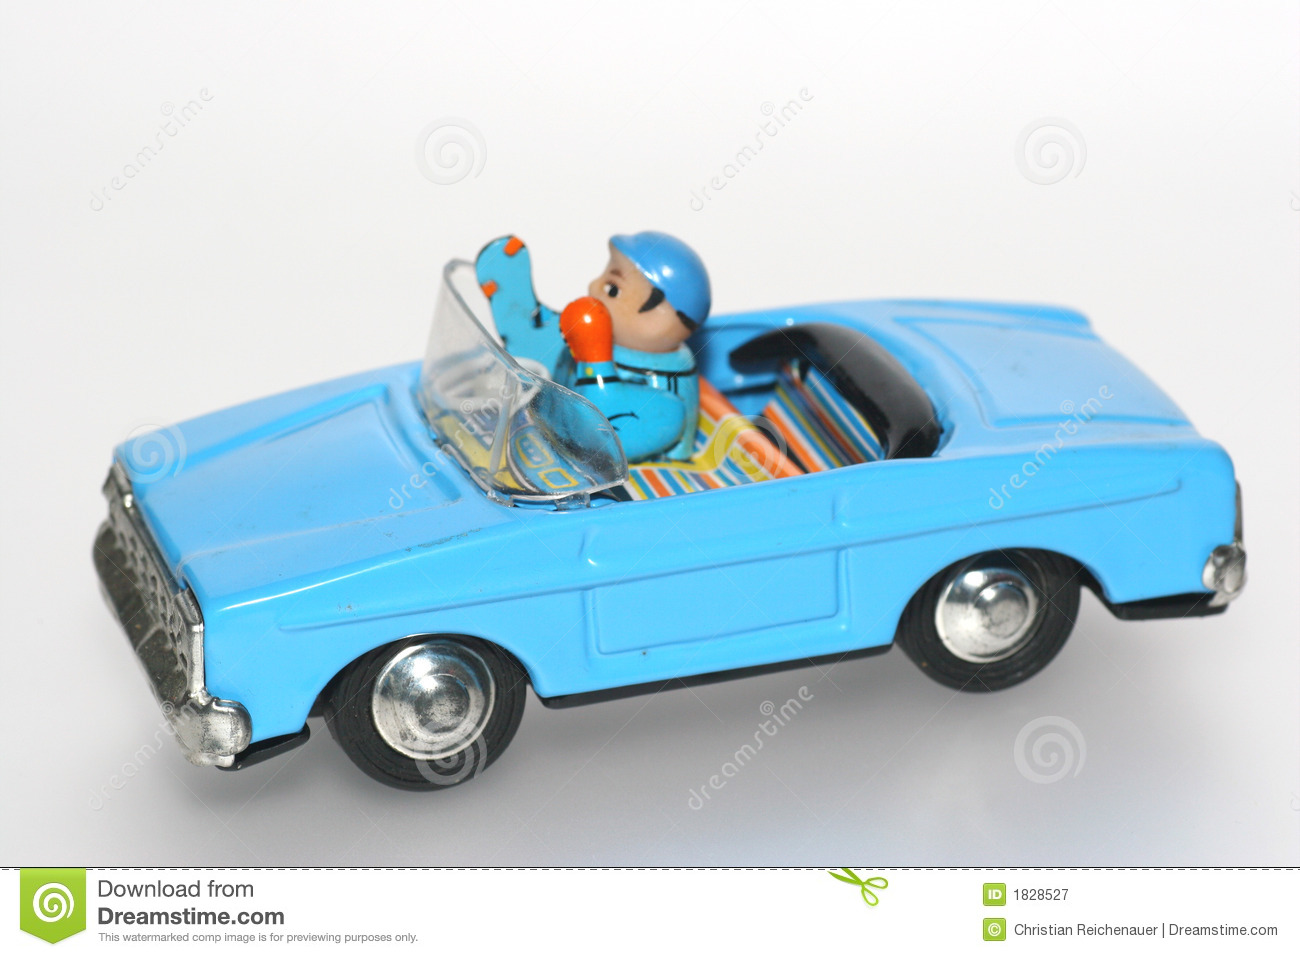 Tin toy car with driver